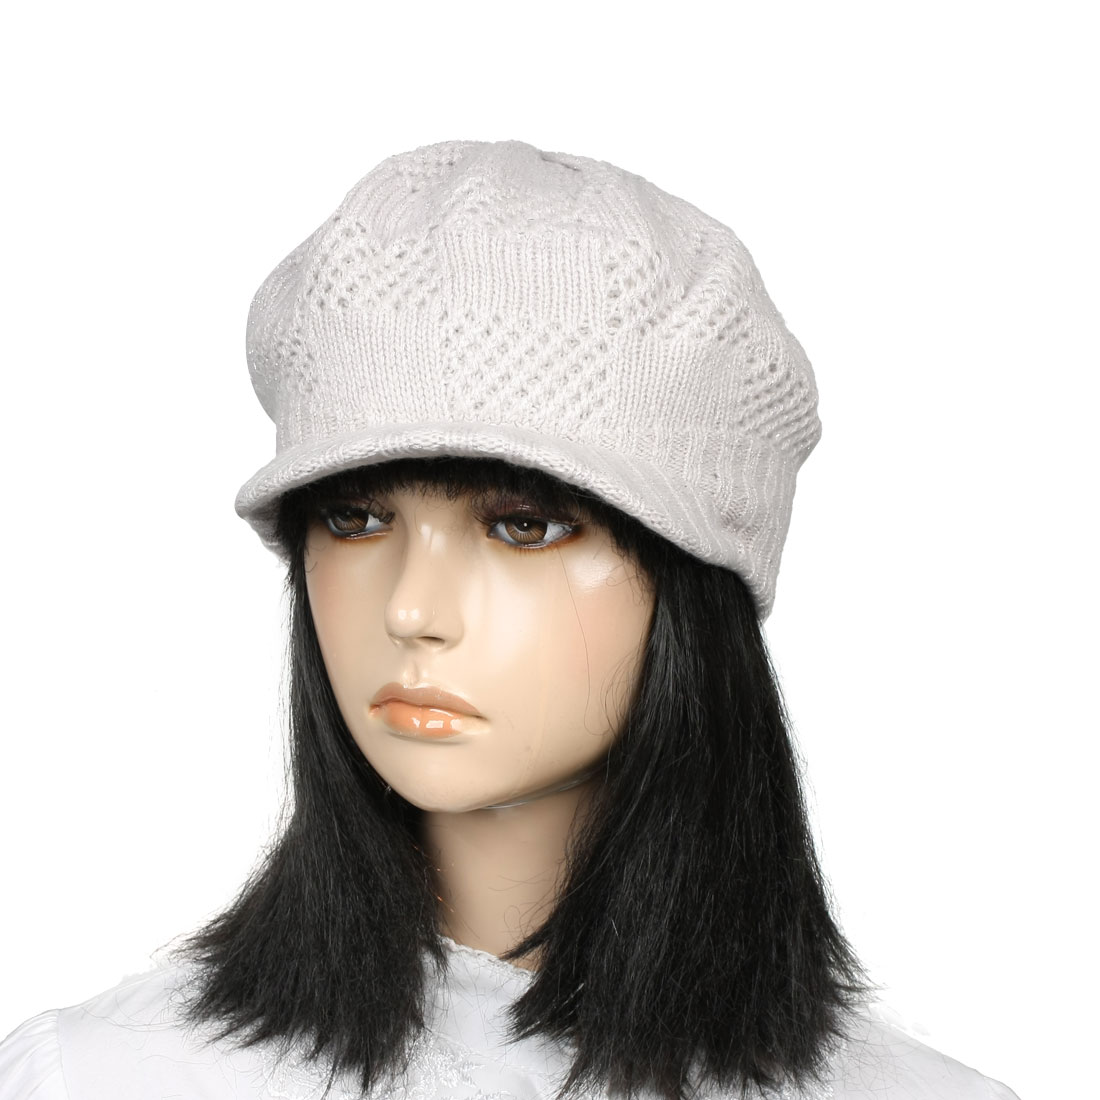 Ladies Ribbed Visor Hand Knit Baggy Beret Hat Cap Warmer Light Gray White